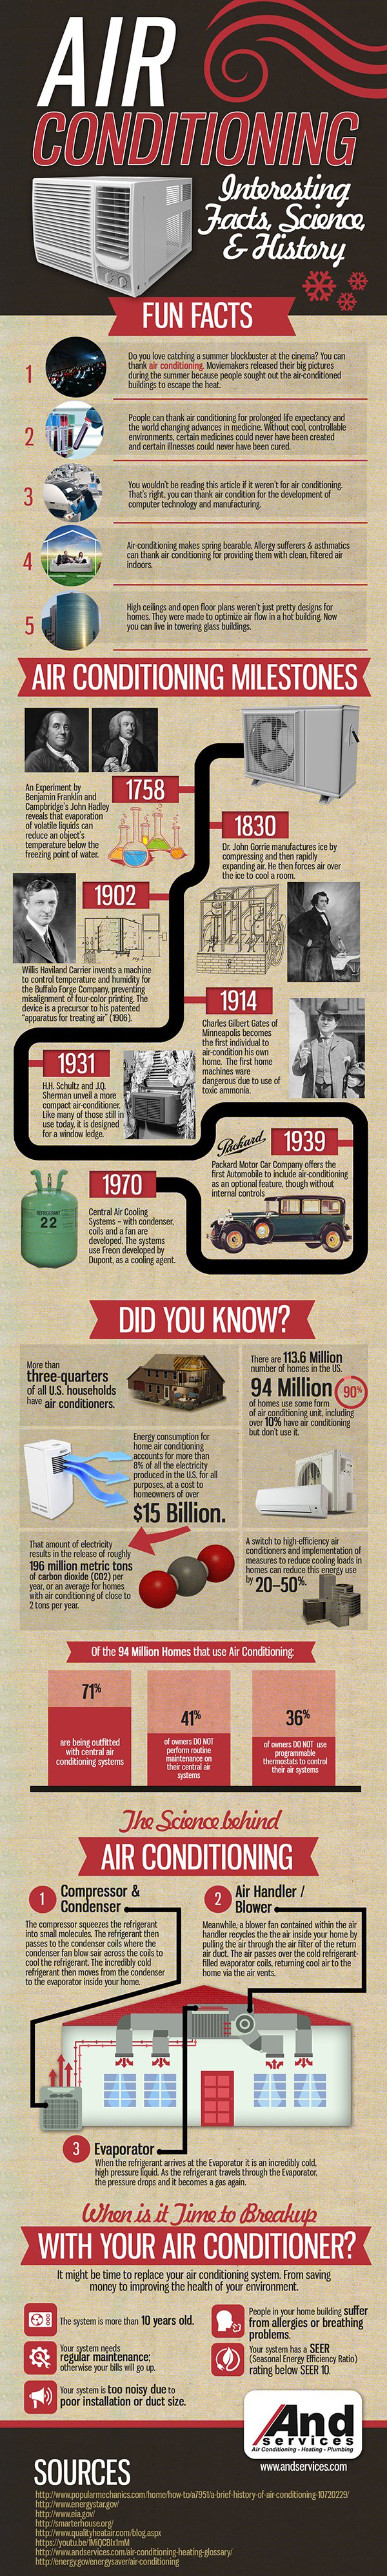 Air Conditioning Fun Facts, Science & History